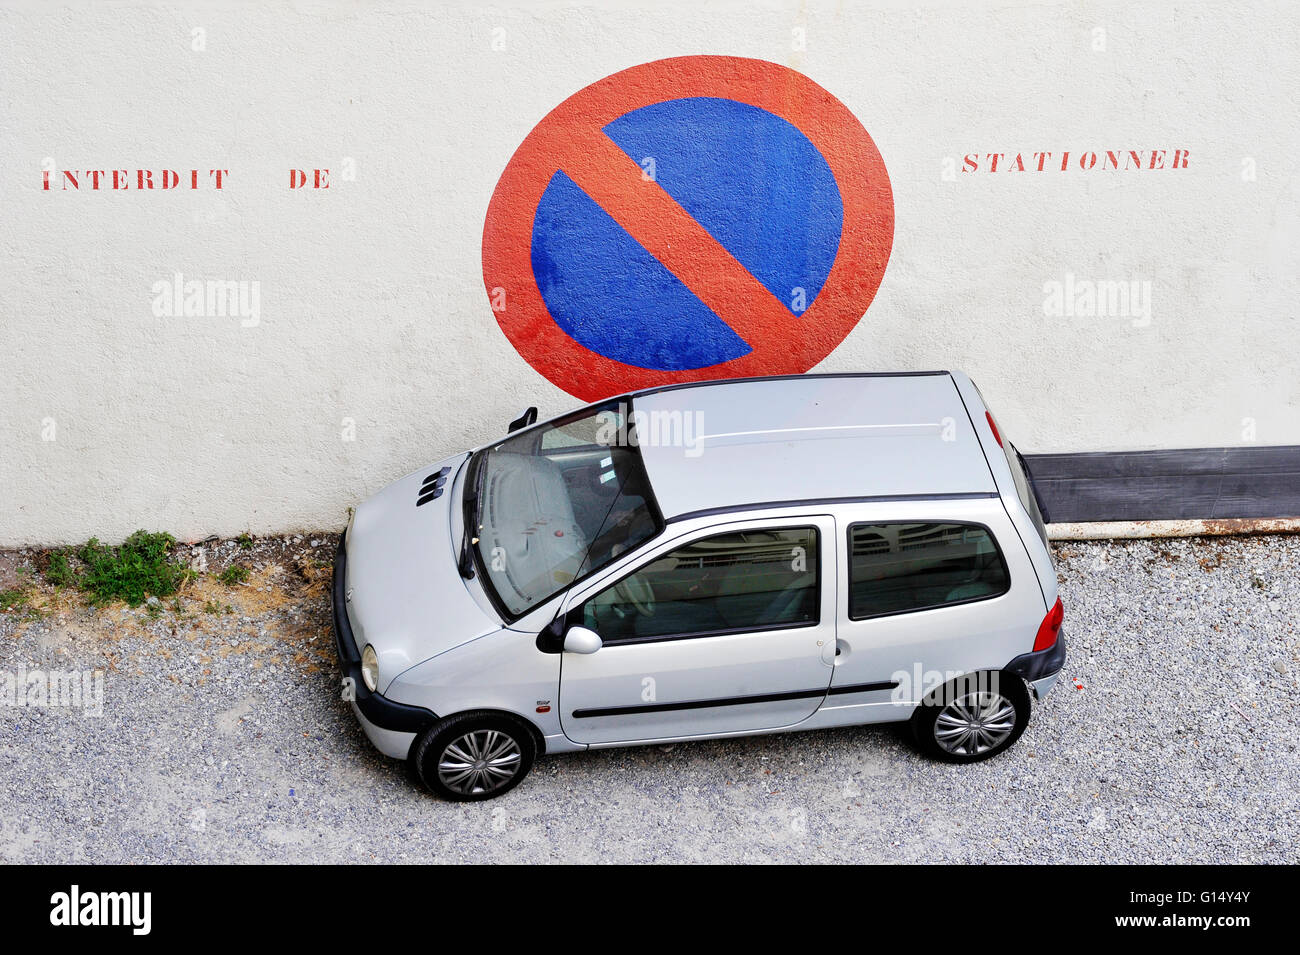 No parking sign with a car, Juan les Pins, France - Stock Image